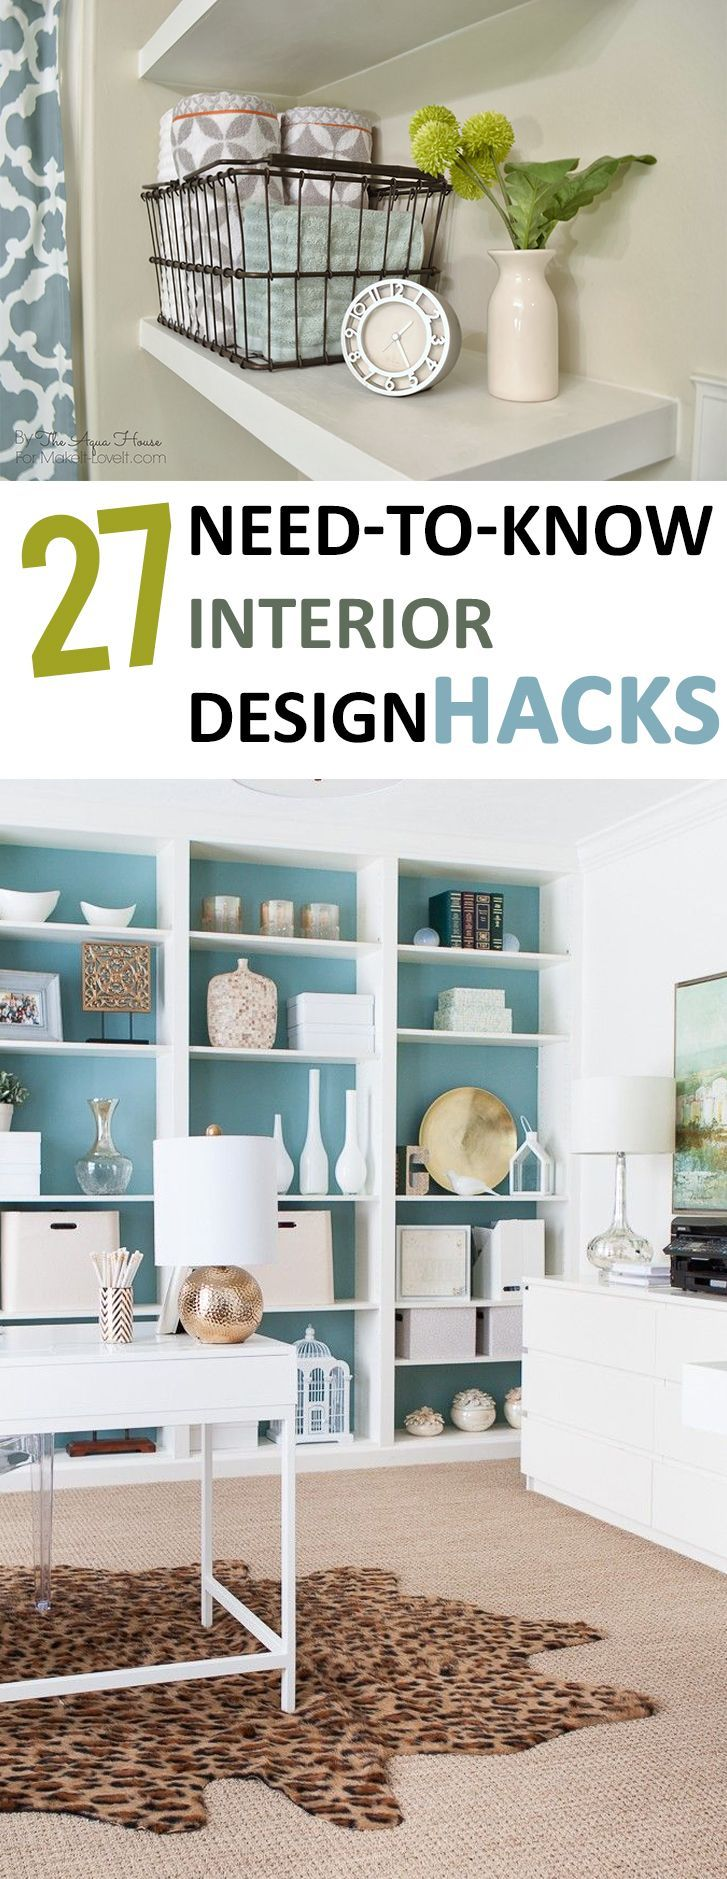 Incredible! Design Cheat Sheet: 5 Need-To-Know Tricks About Decorating With Color